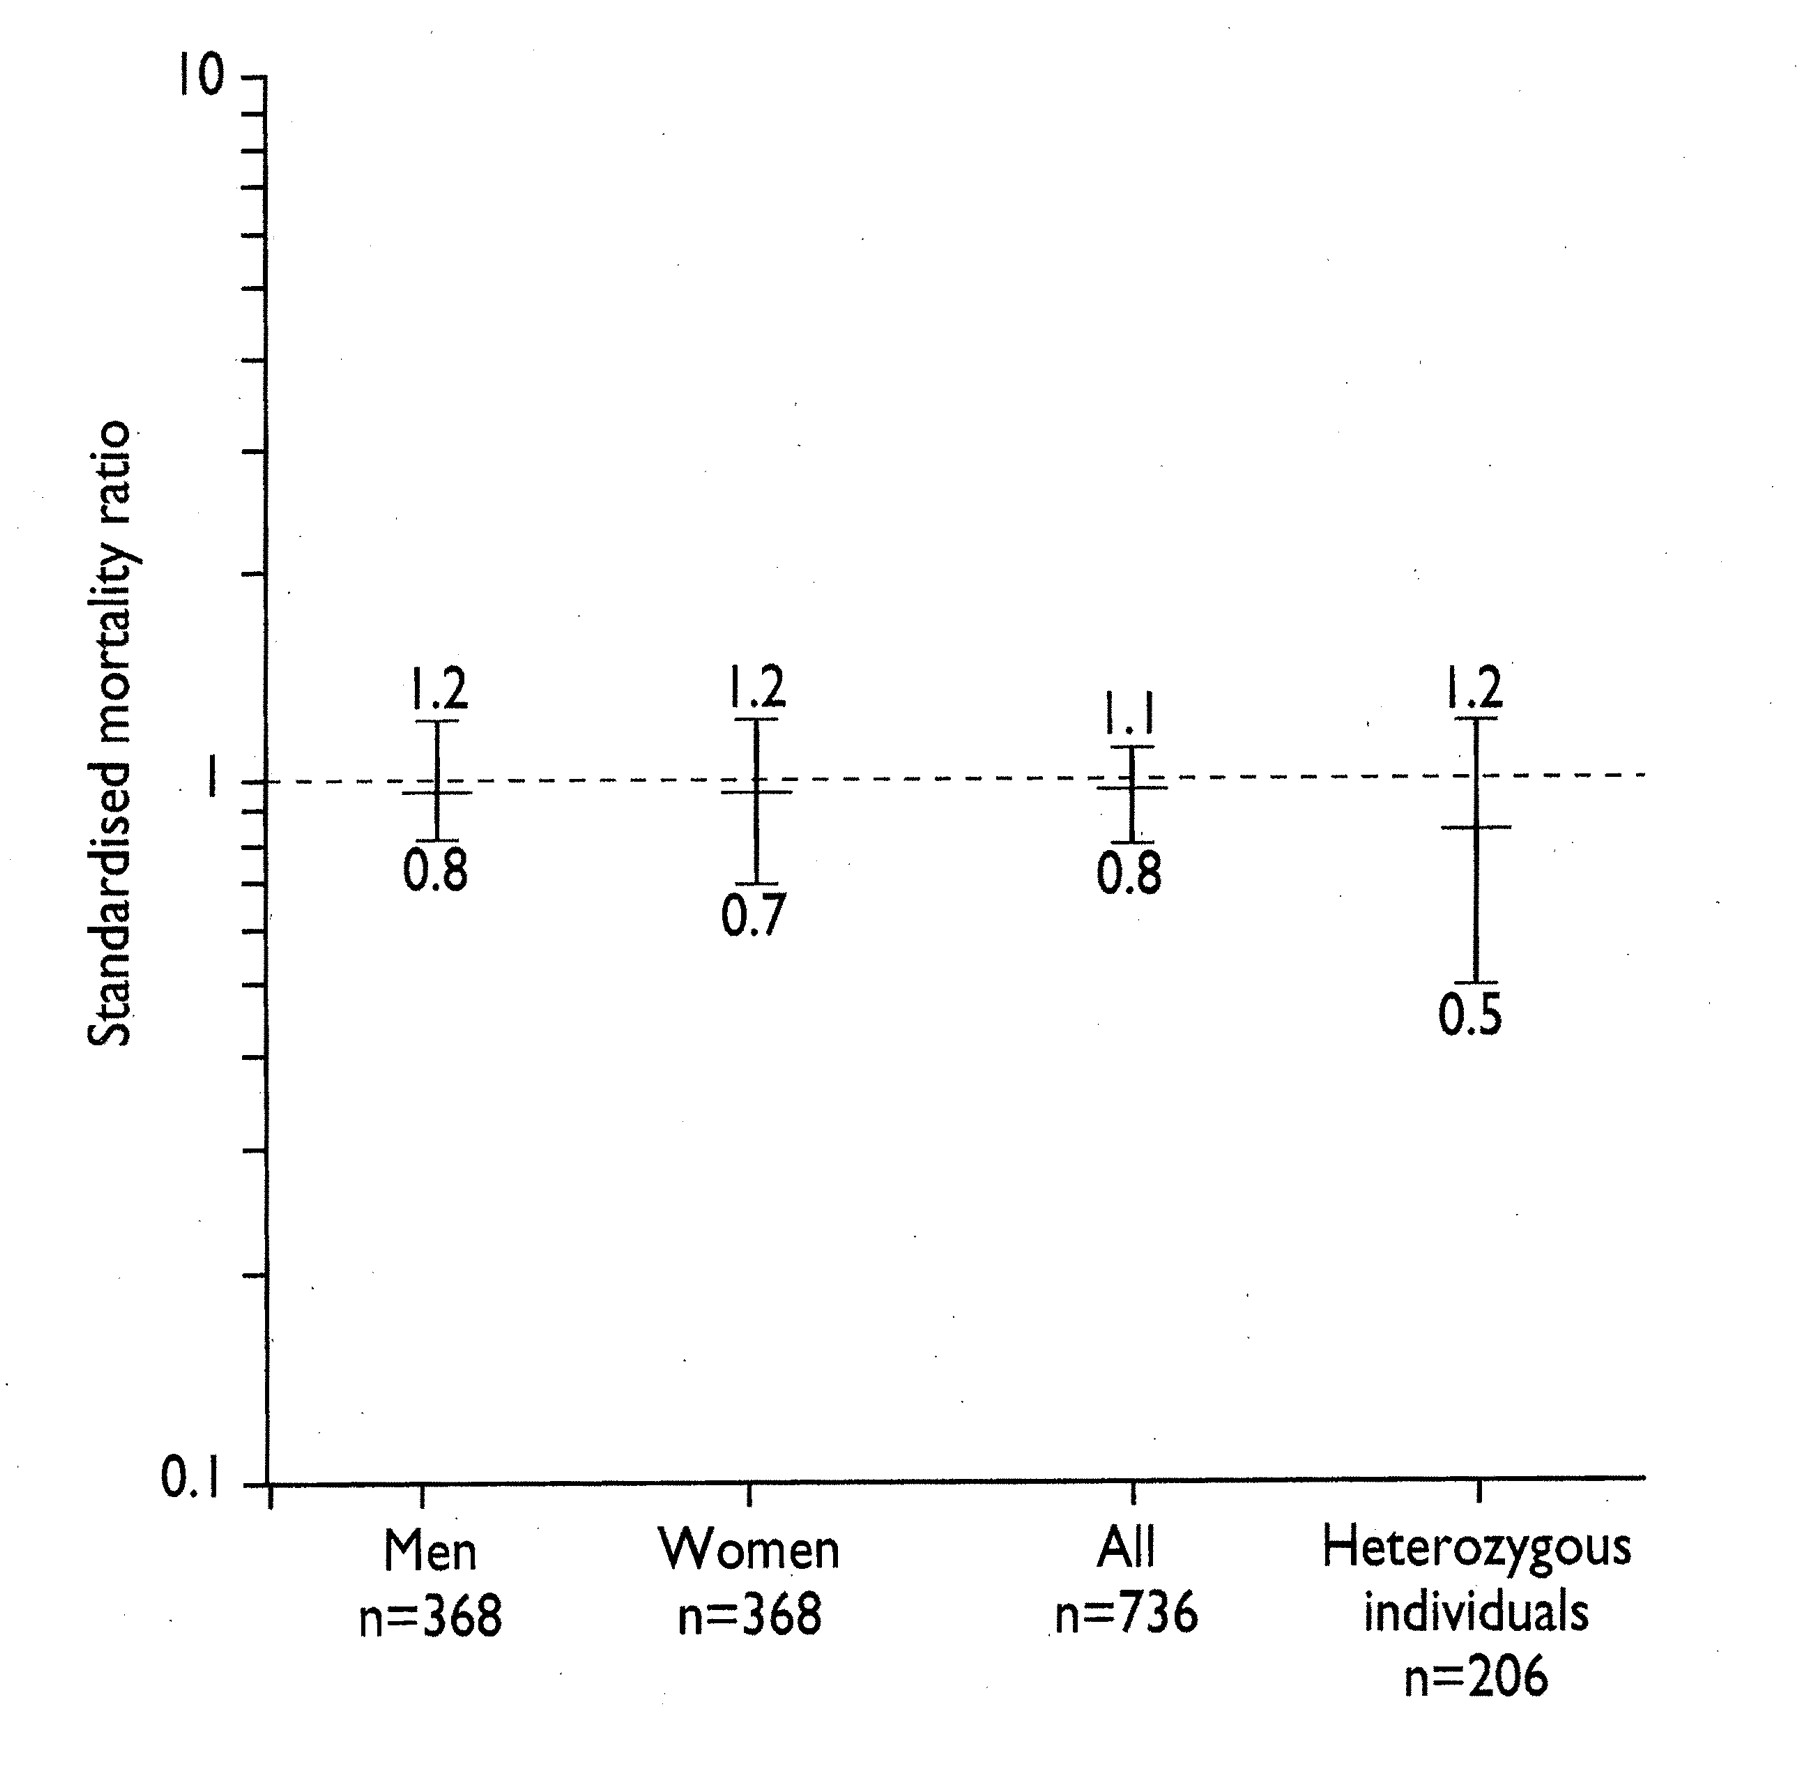 survival in families with hereditary protein c deficiency 1820 to